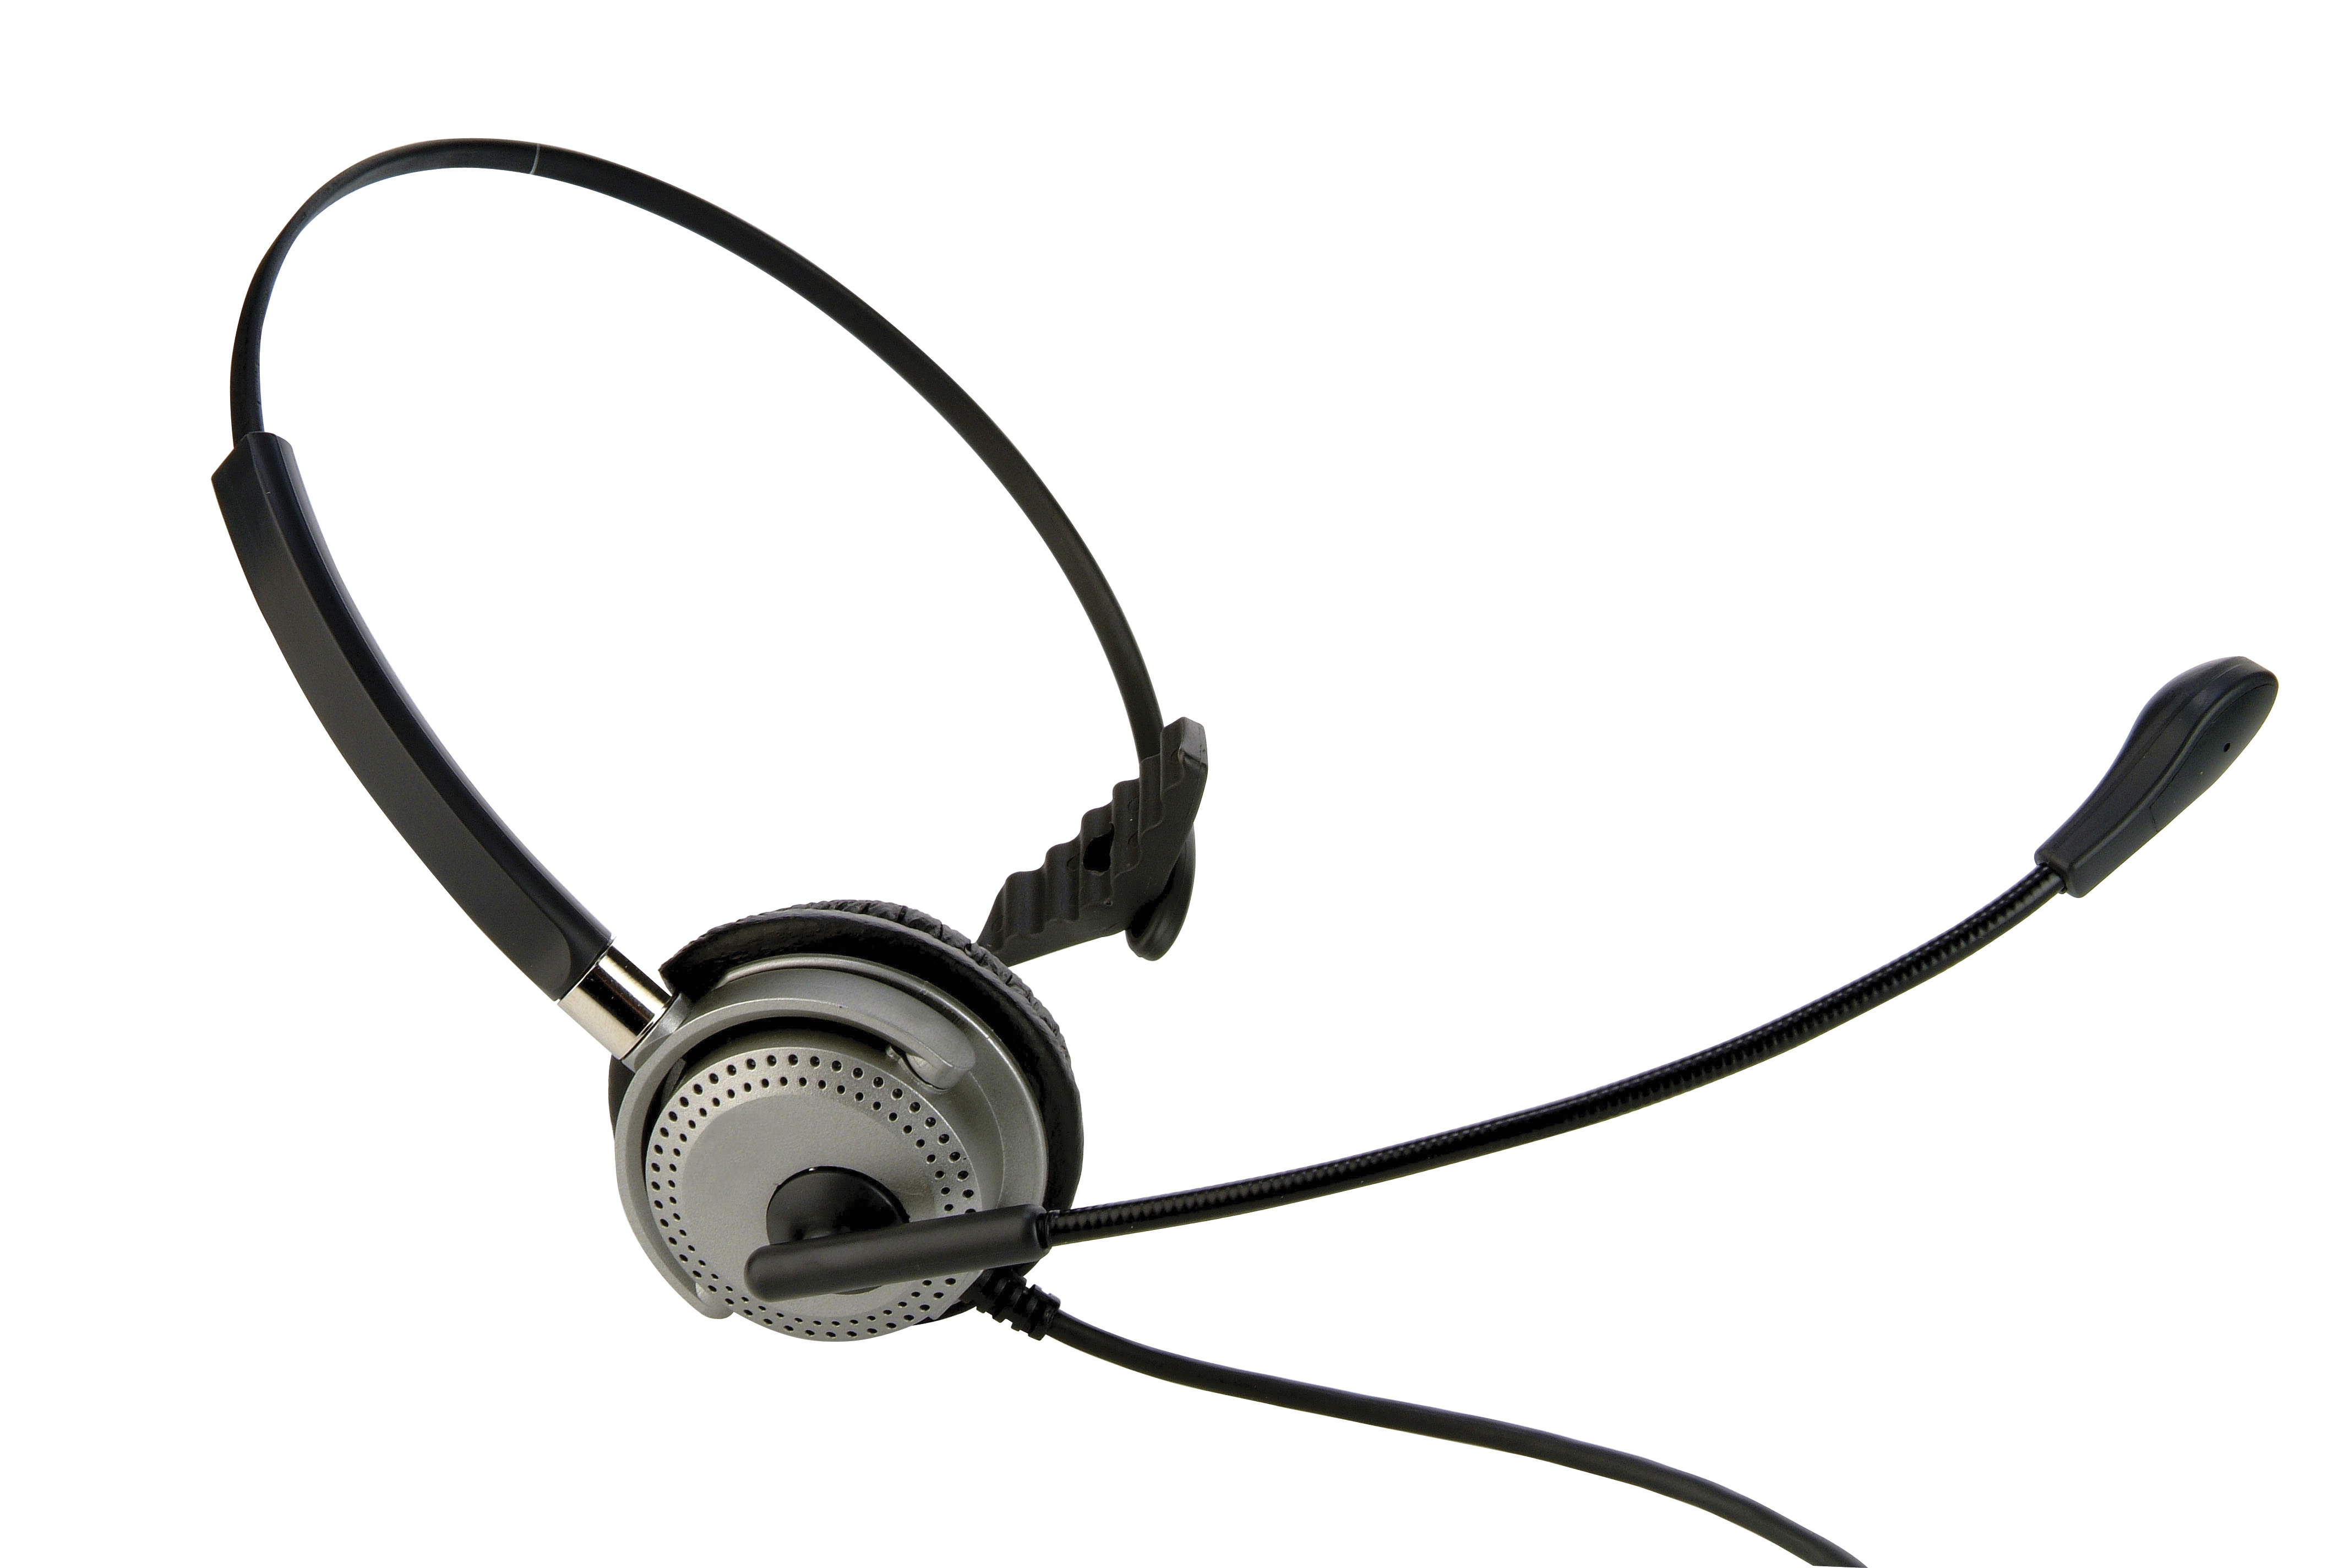 M501 Wired headset